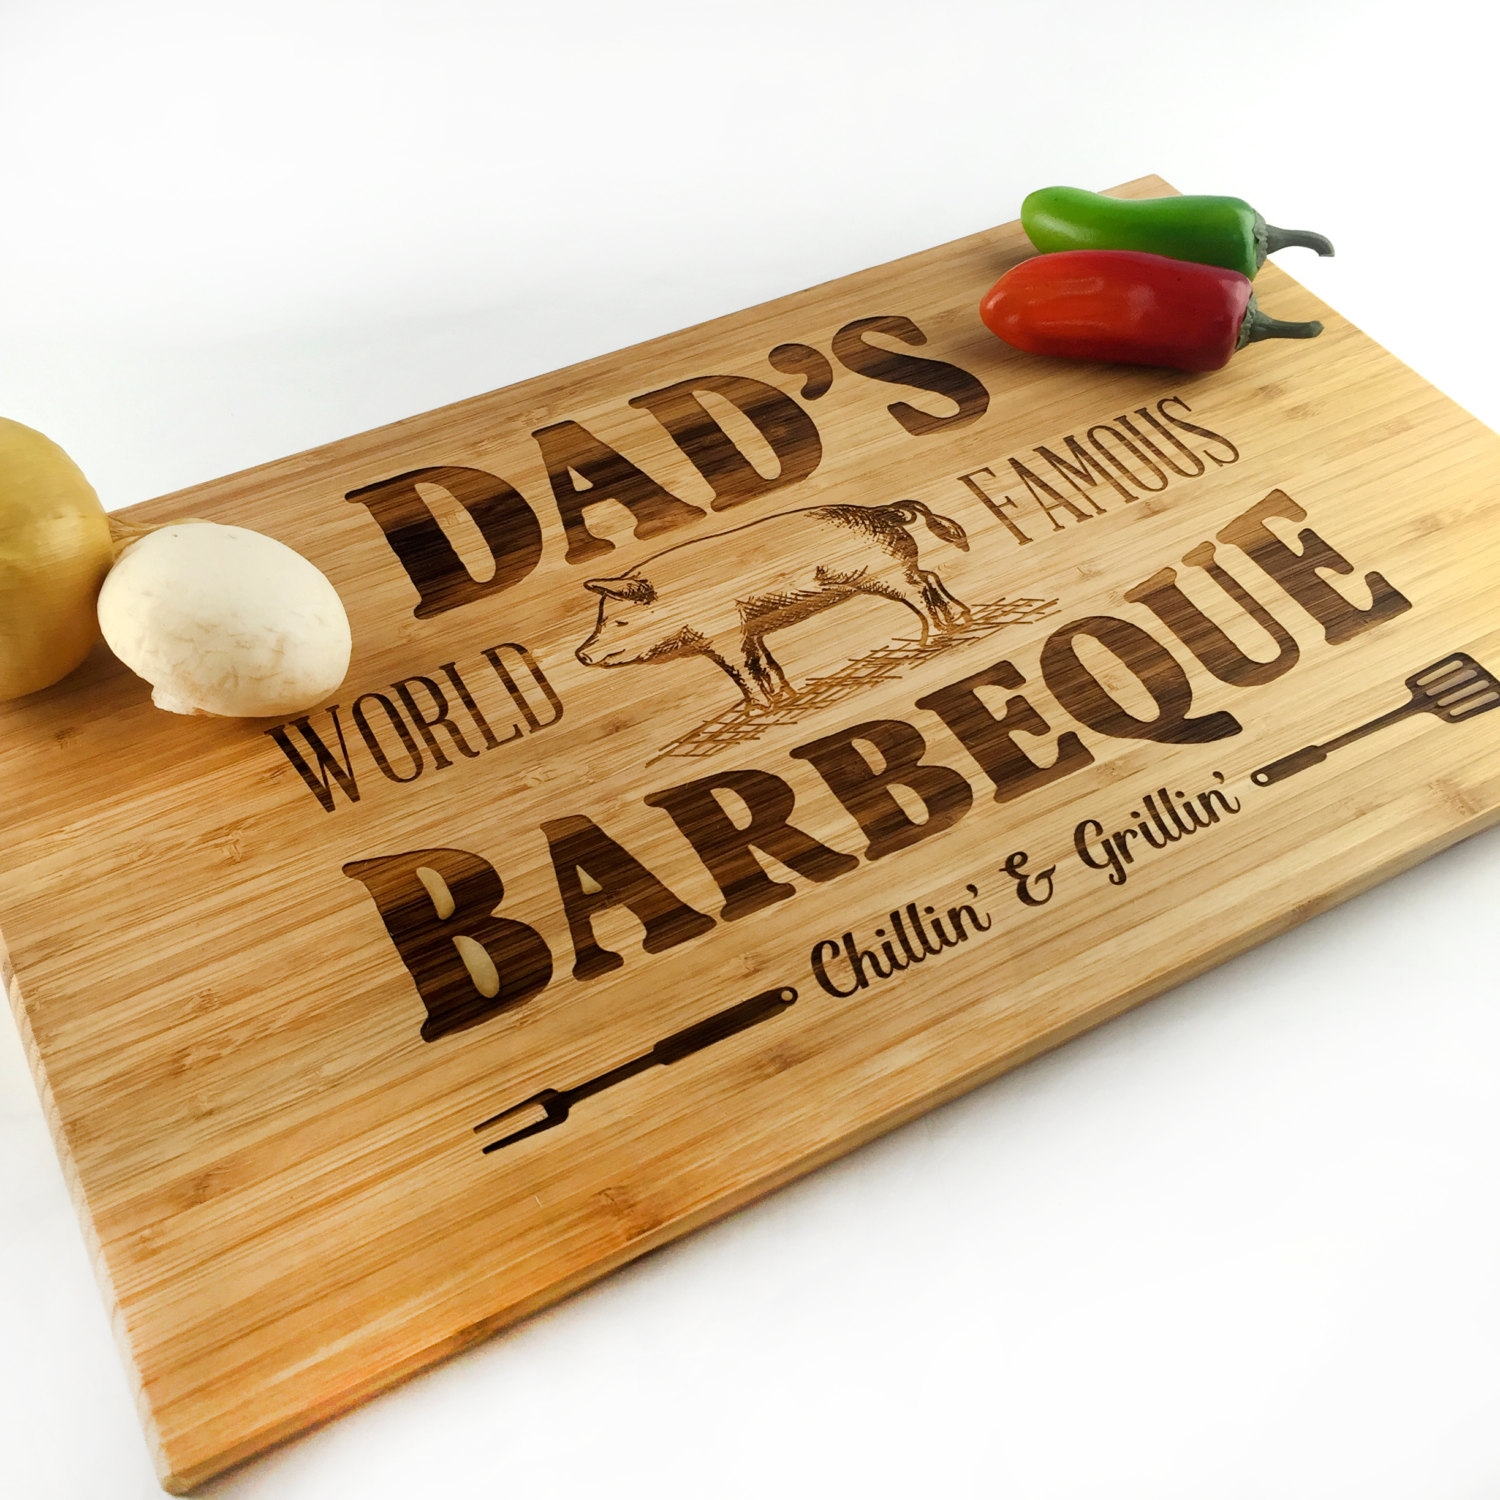 father's day | diy | diy wood gifts | diy gifts | diy wood gifts for father's day | wood gifts | gifts for father's day